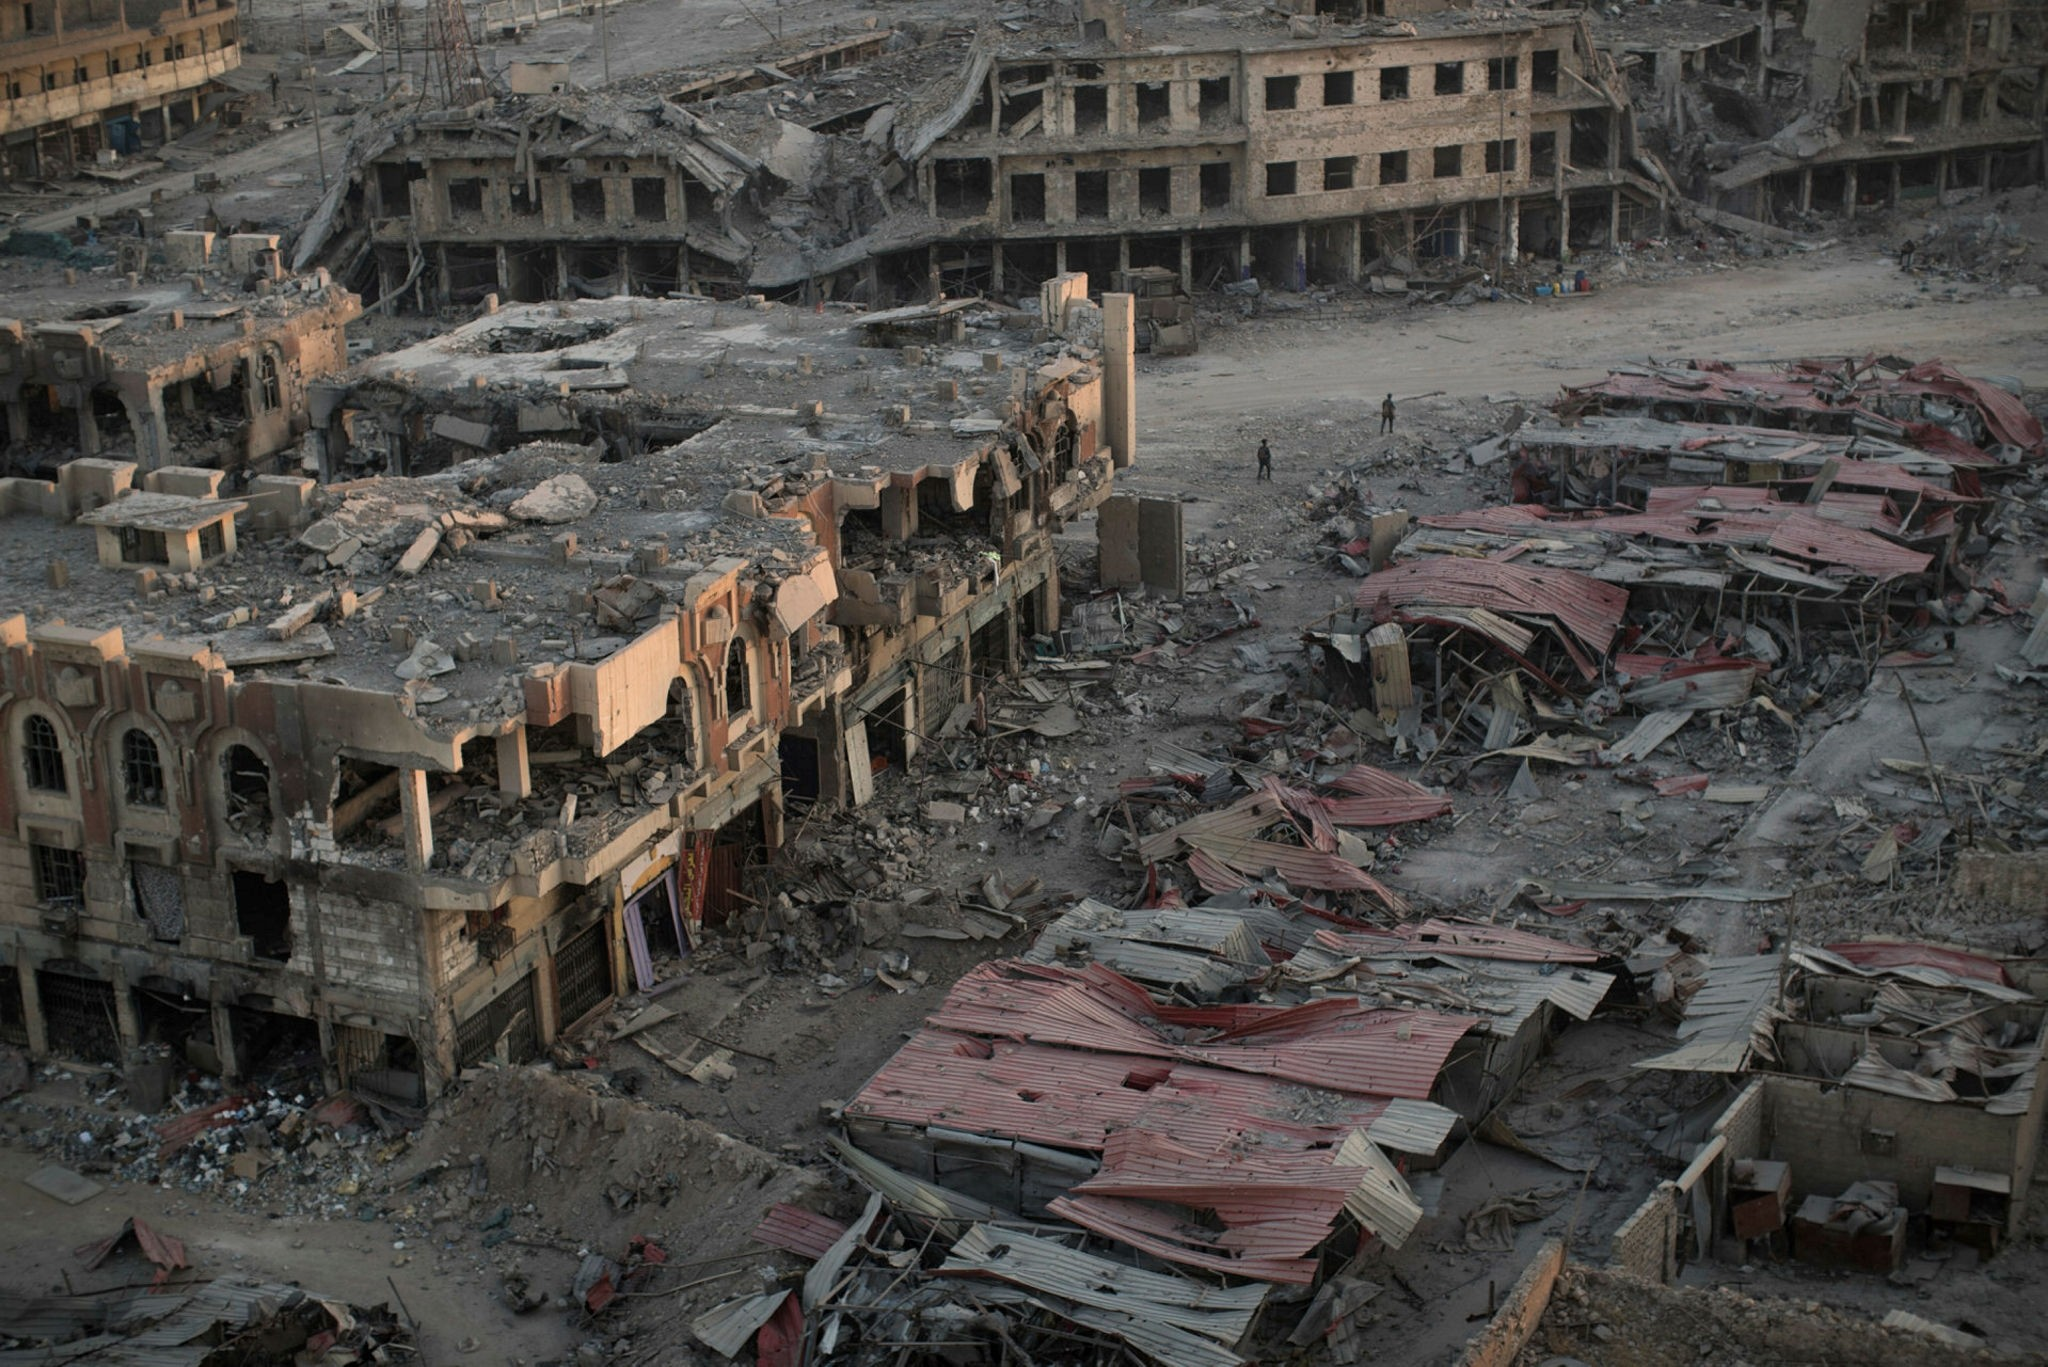 People walk through a damaged neighborhood as the sun sets on the west side of Mosul, Iraq on July 11.